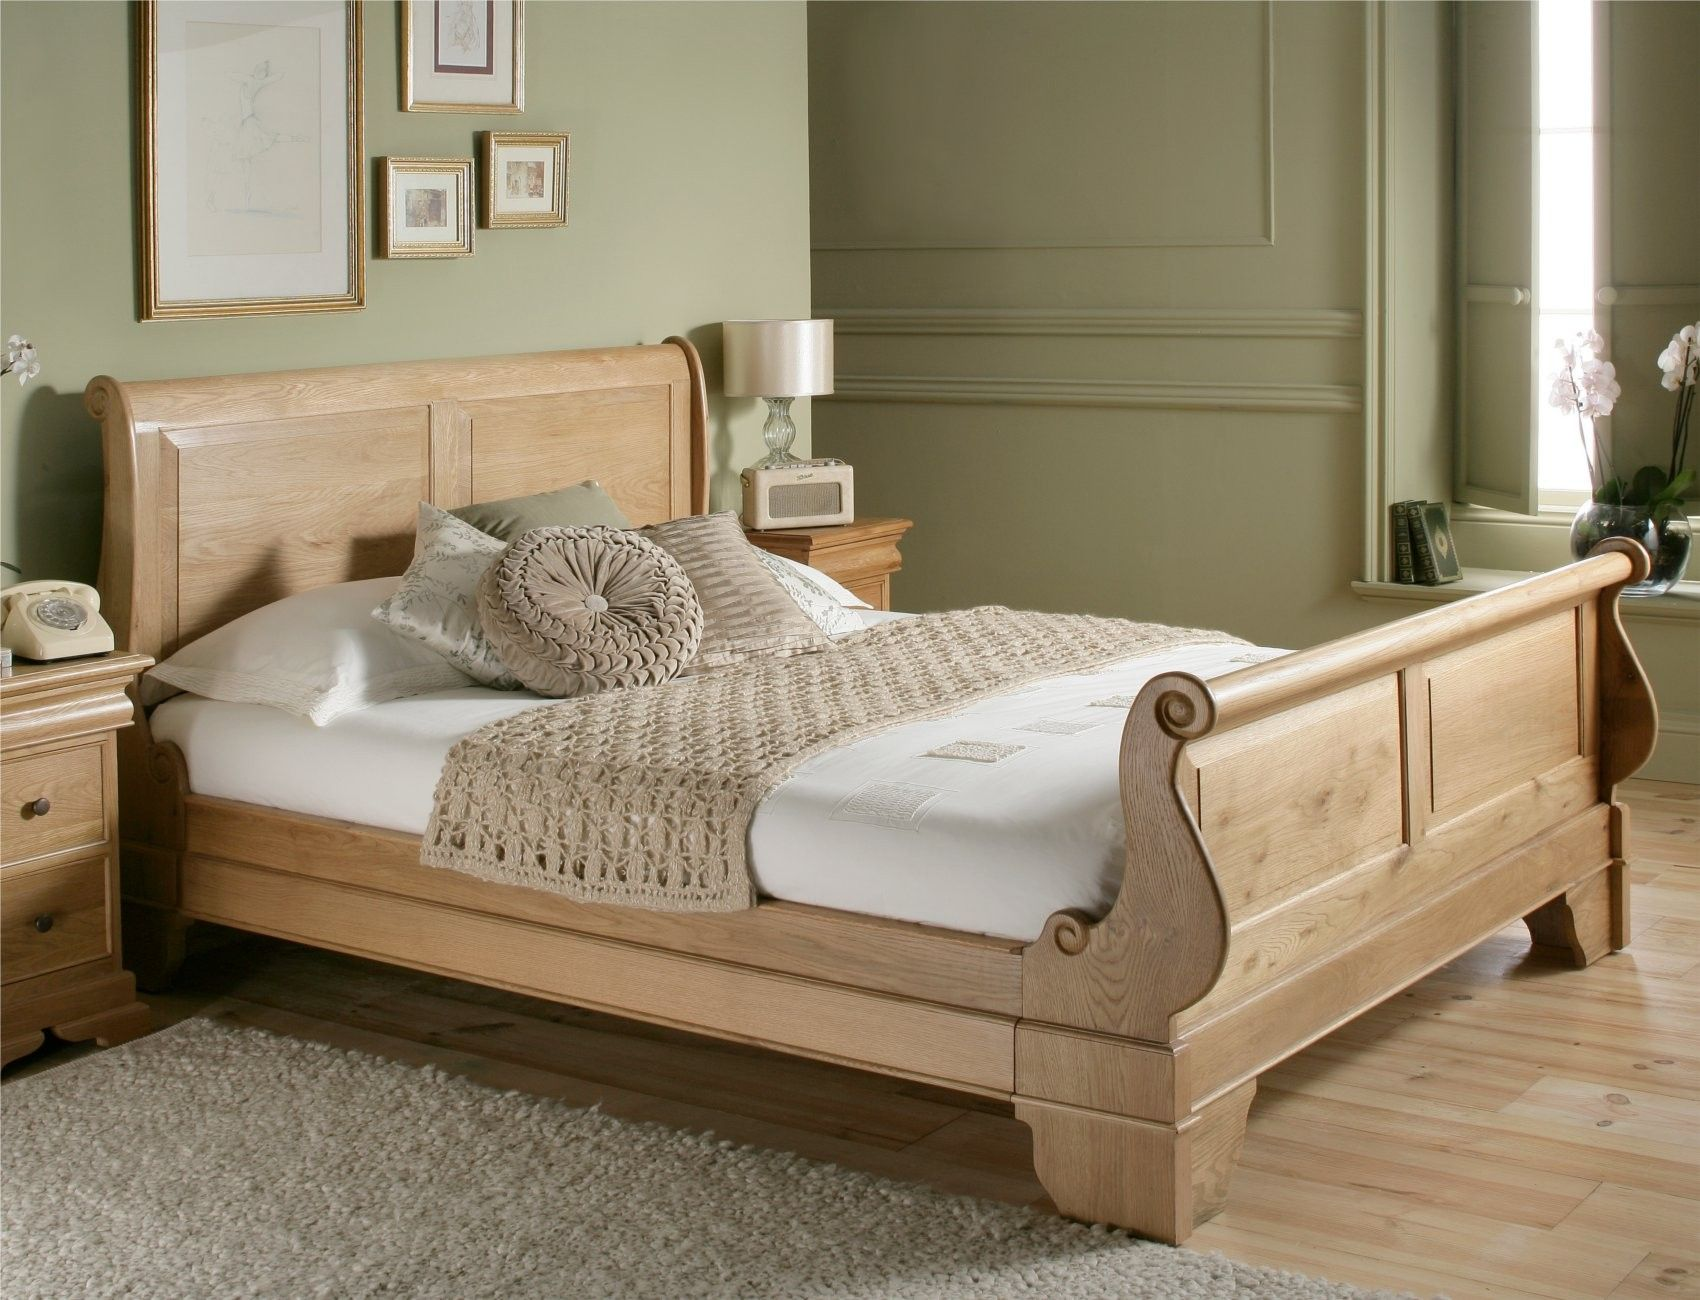 Types Of Beds Wooden Sleigh Bed